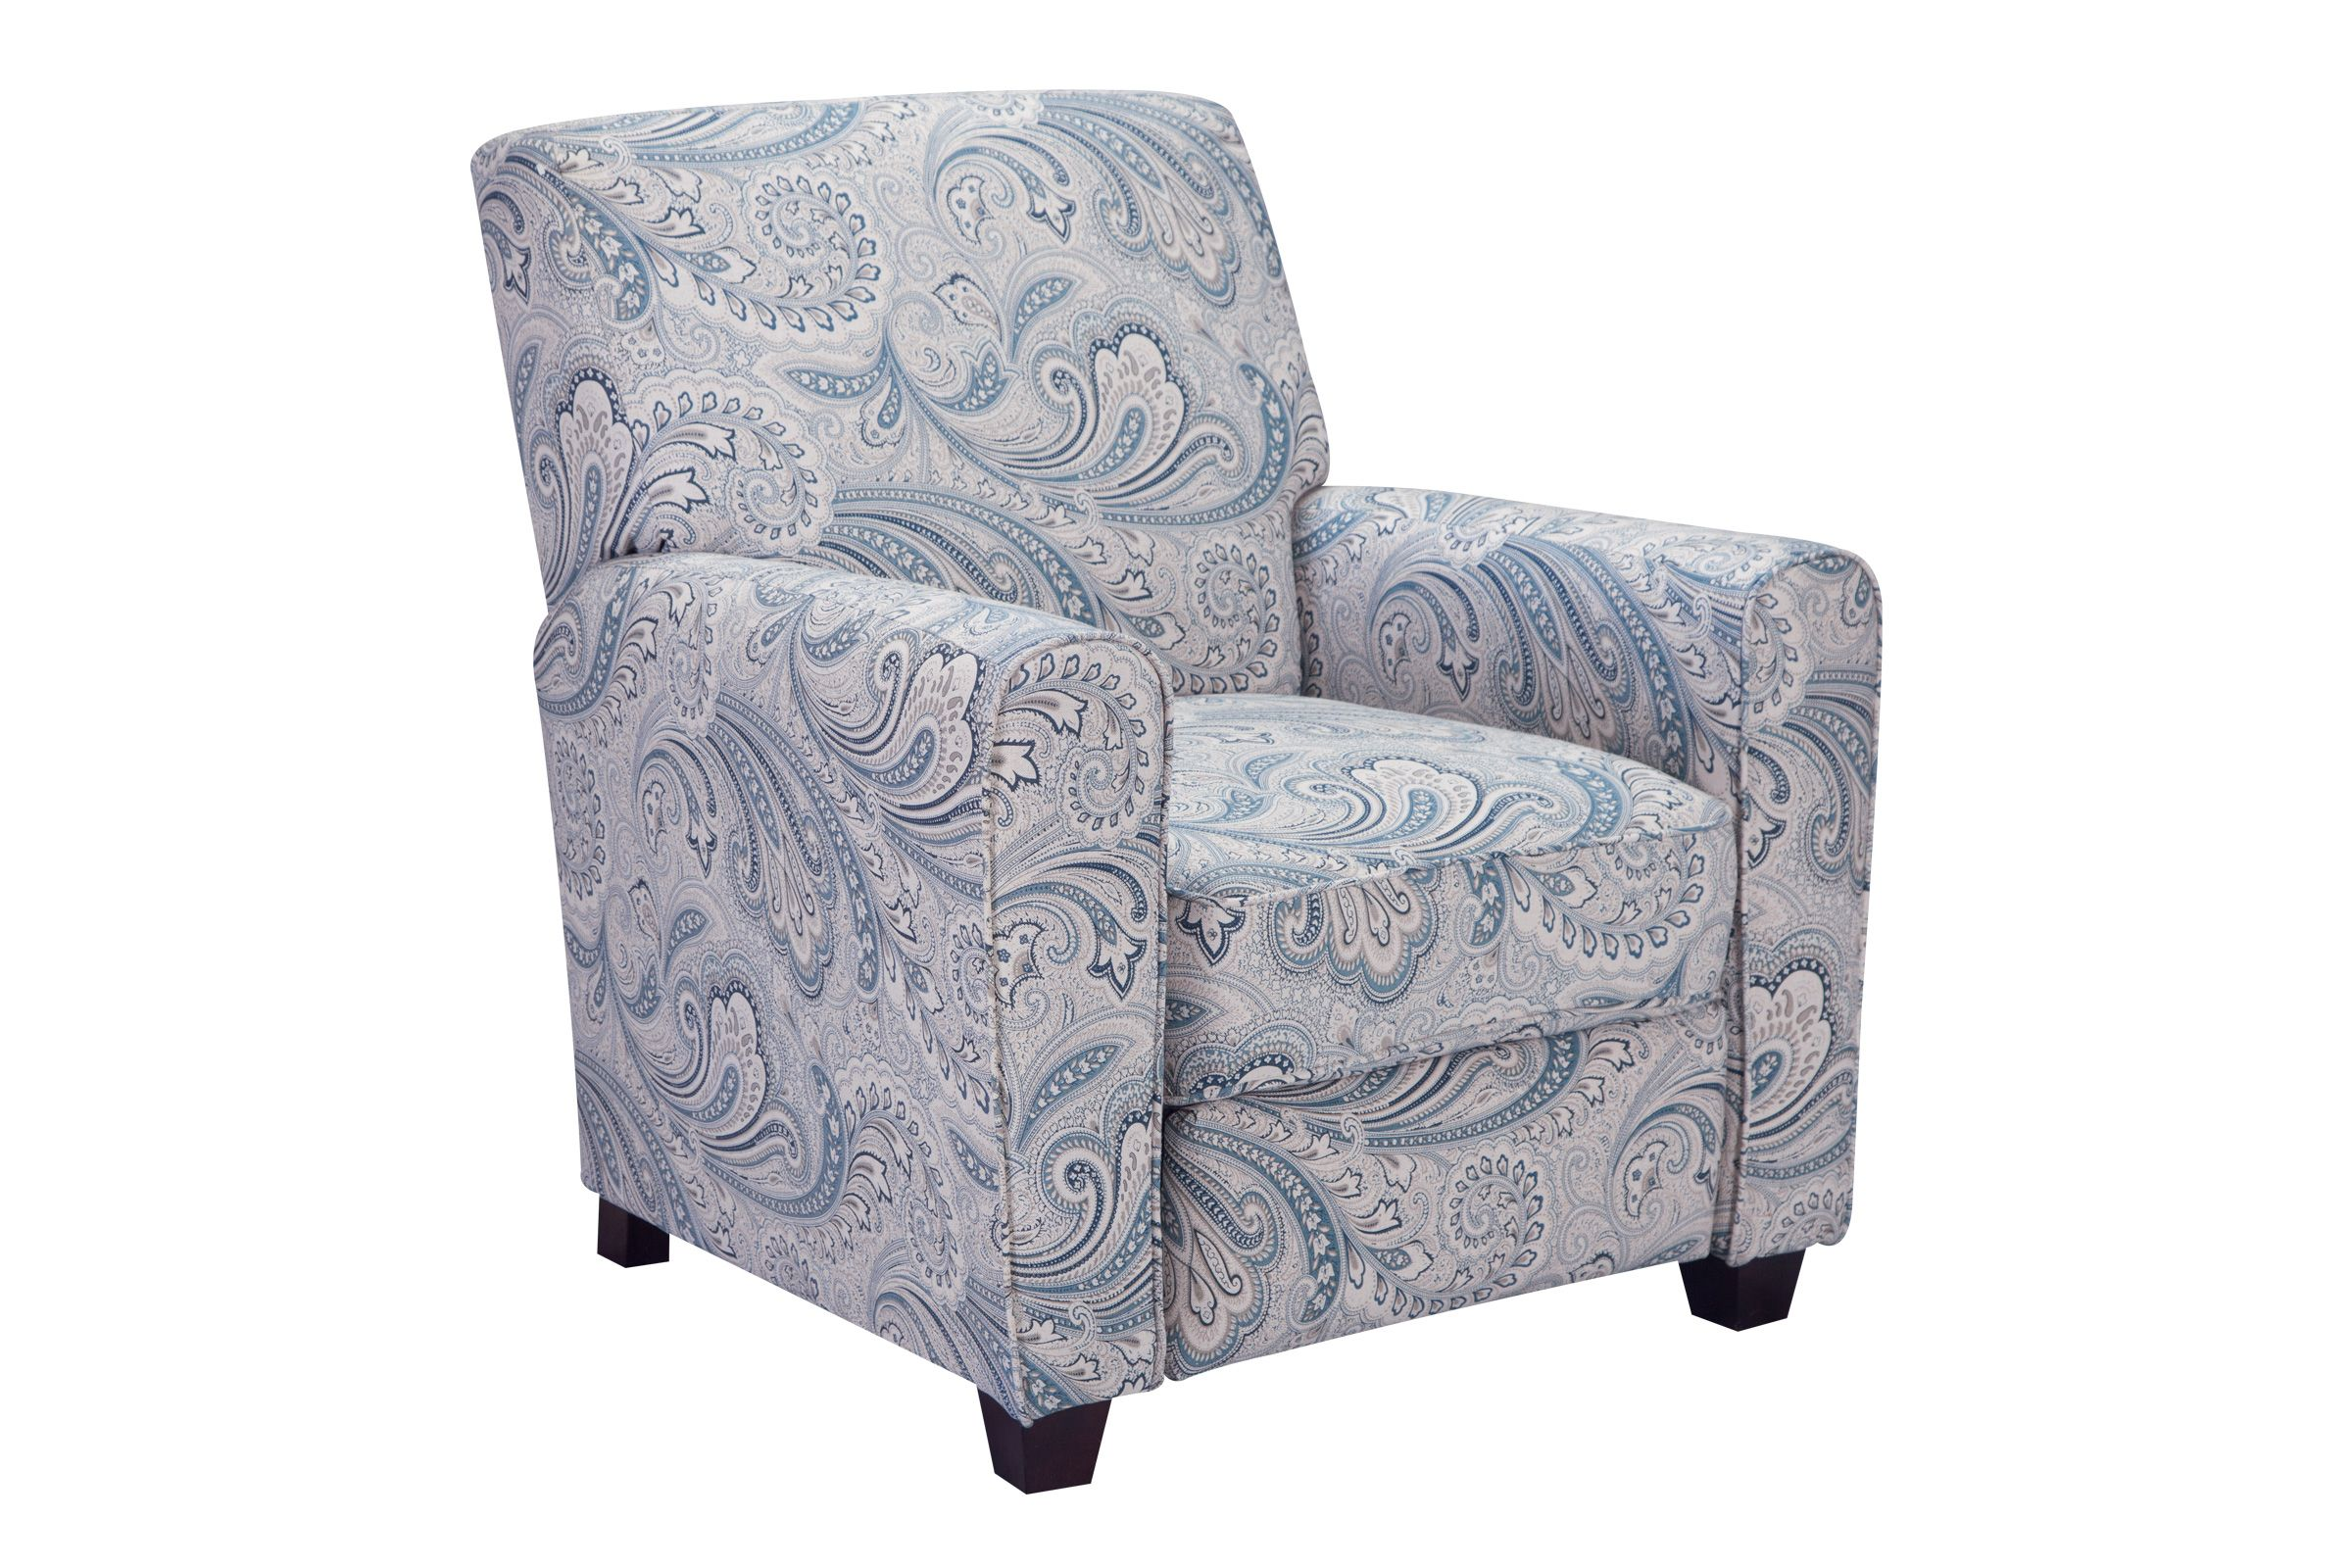 Shop Accent Chairs at Gardner White Furniture